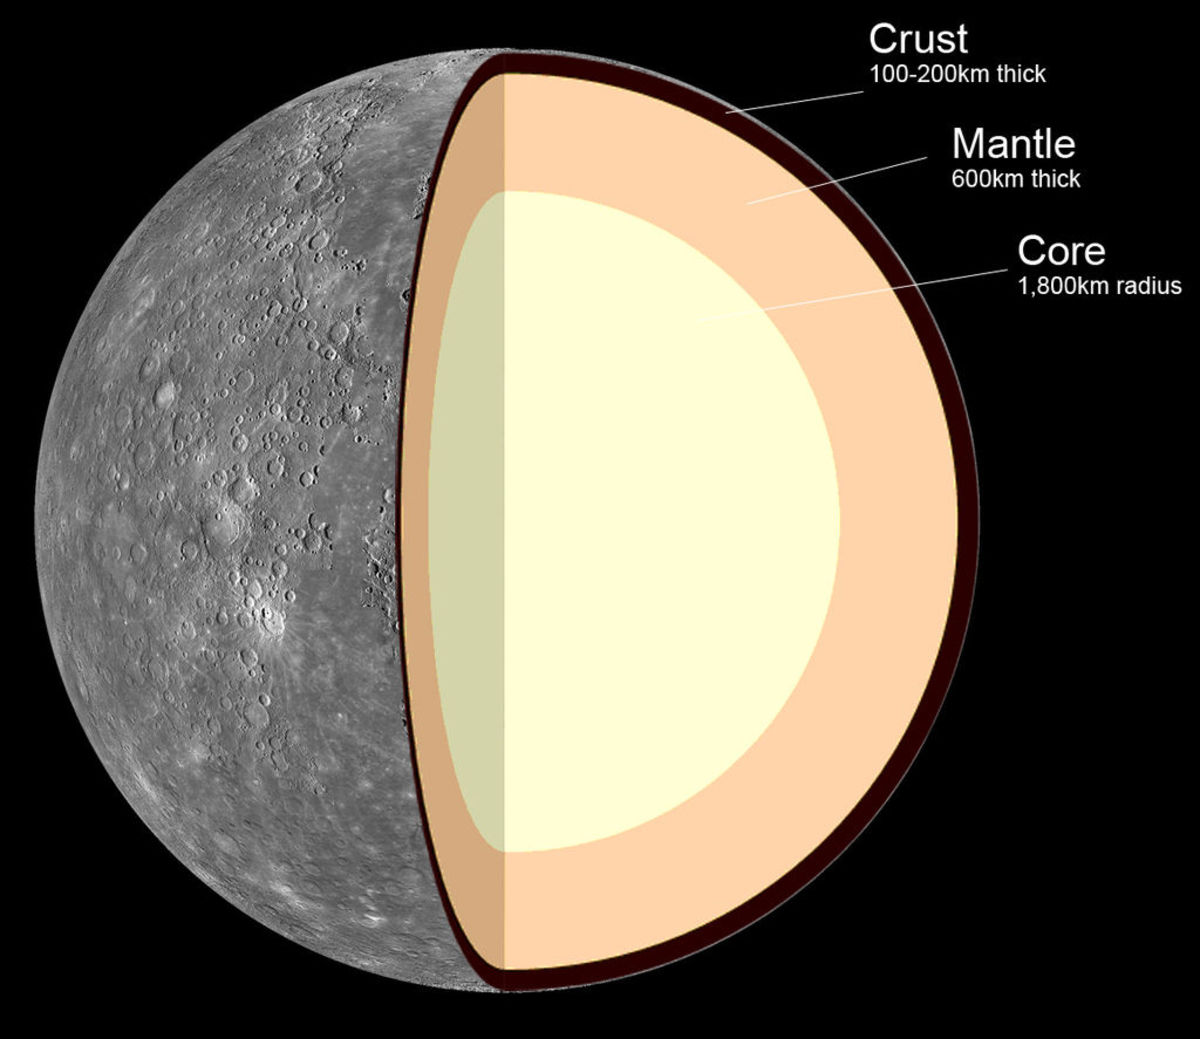 Internal structure of the planet Mercury.